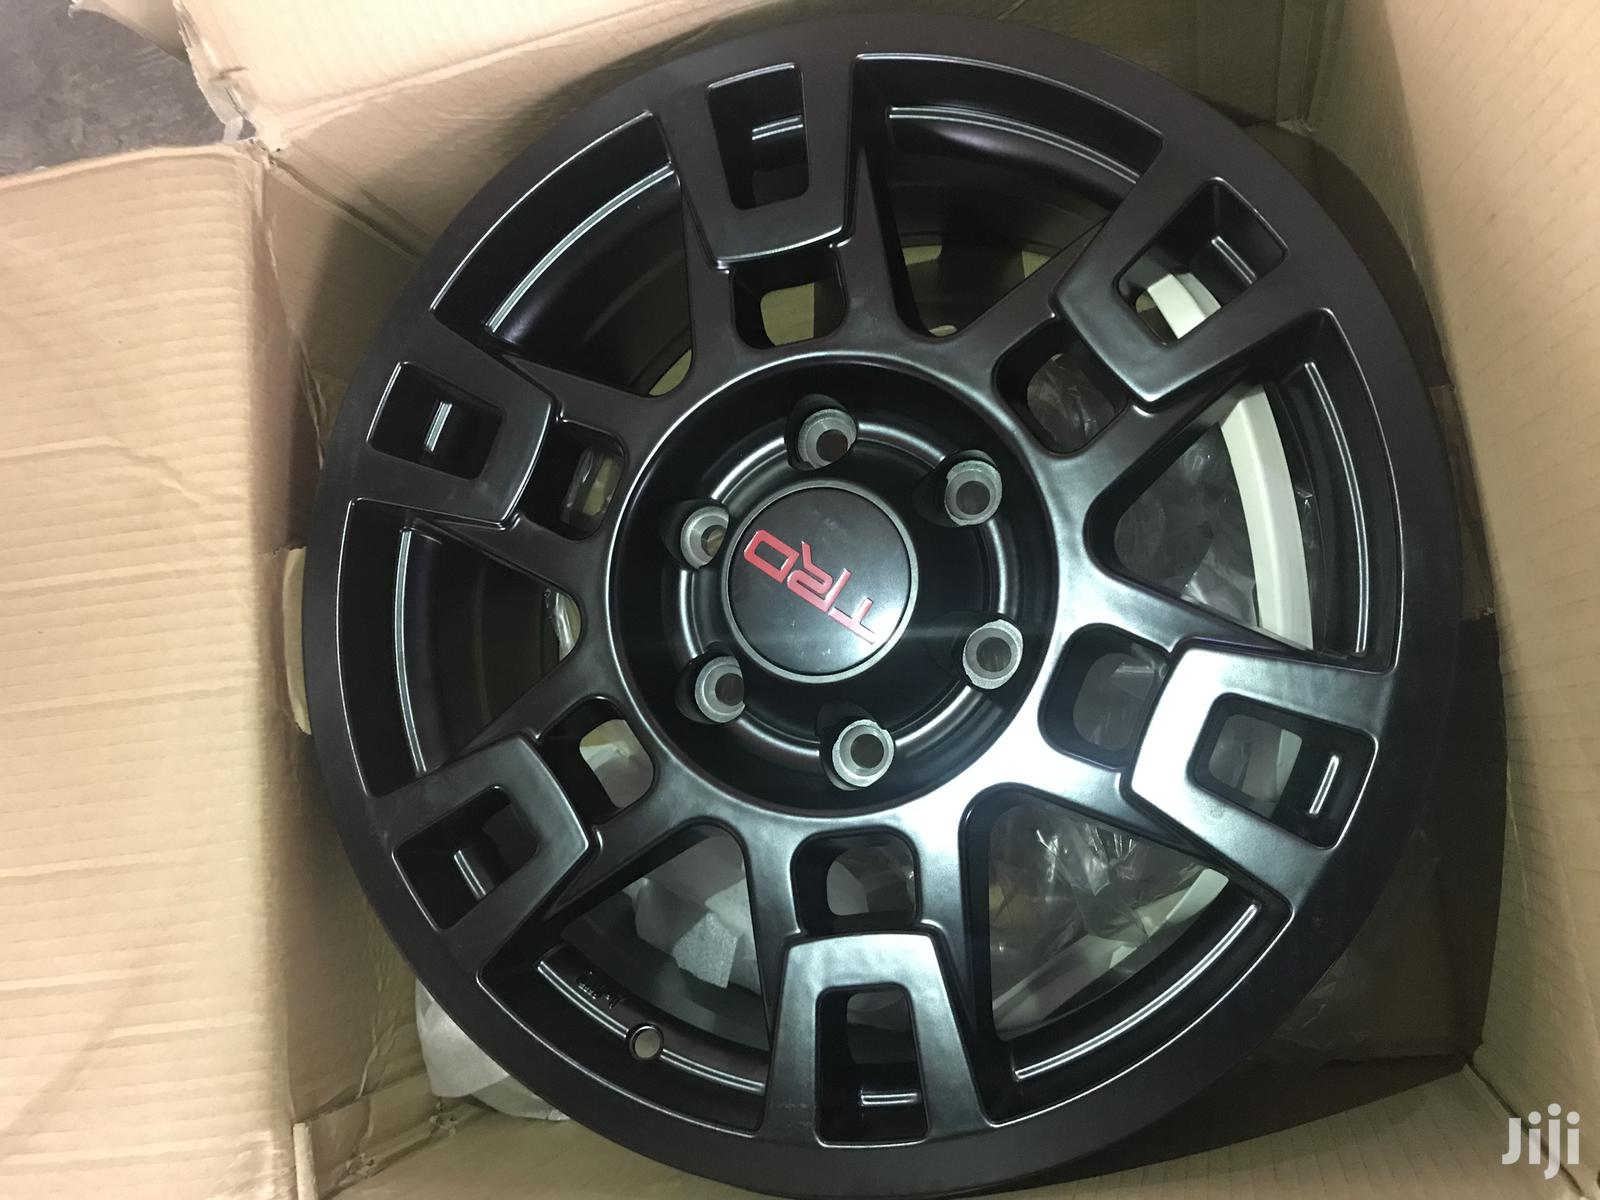 17 Alloy Rims 4 Wheel Drive   Vehicle Parts & Accessories for sale in Abossey Okai, Greater Accra, Ghana